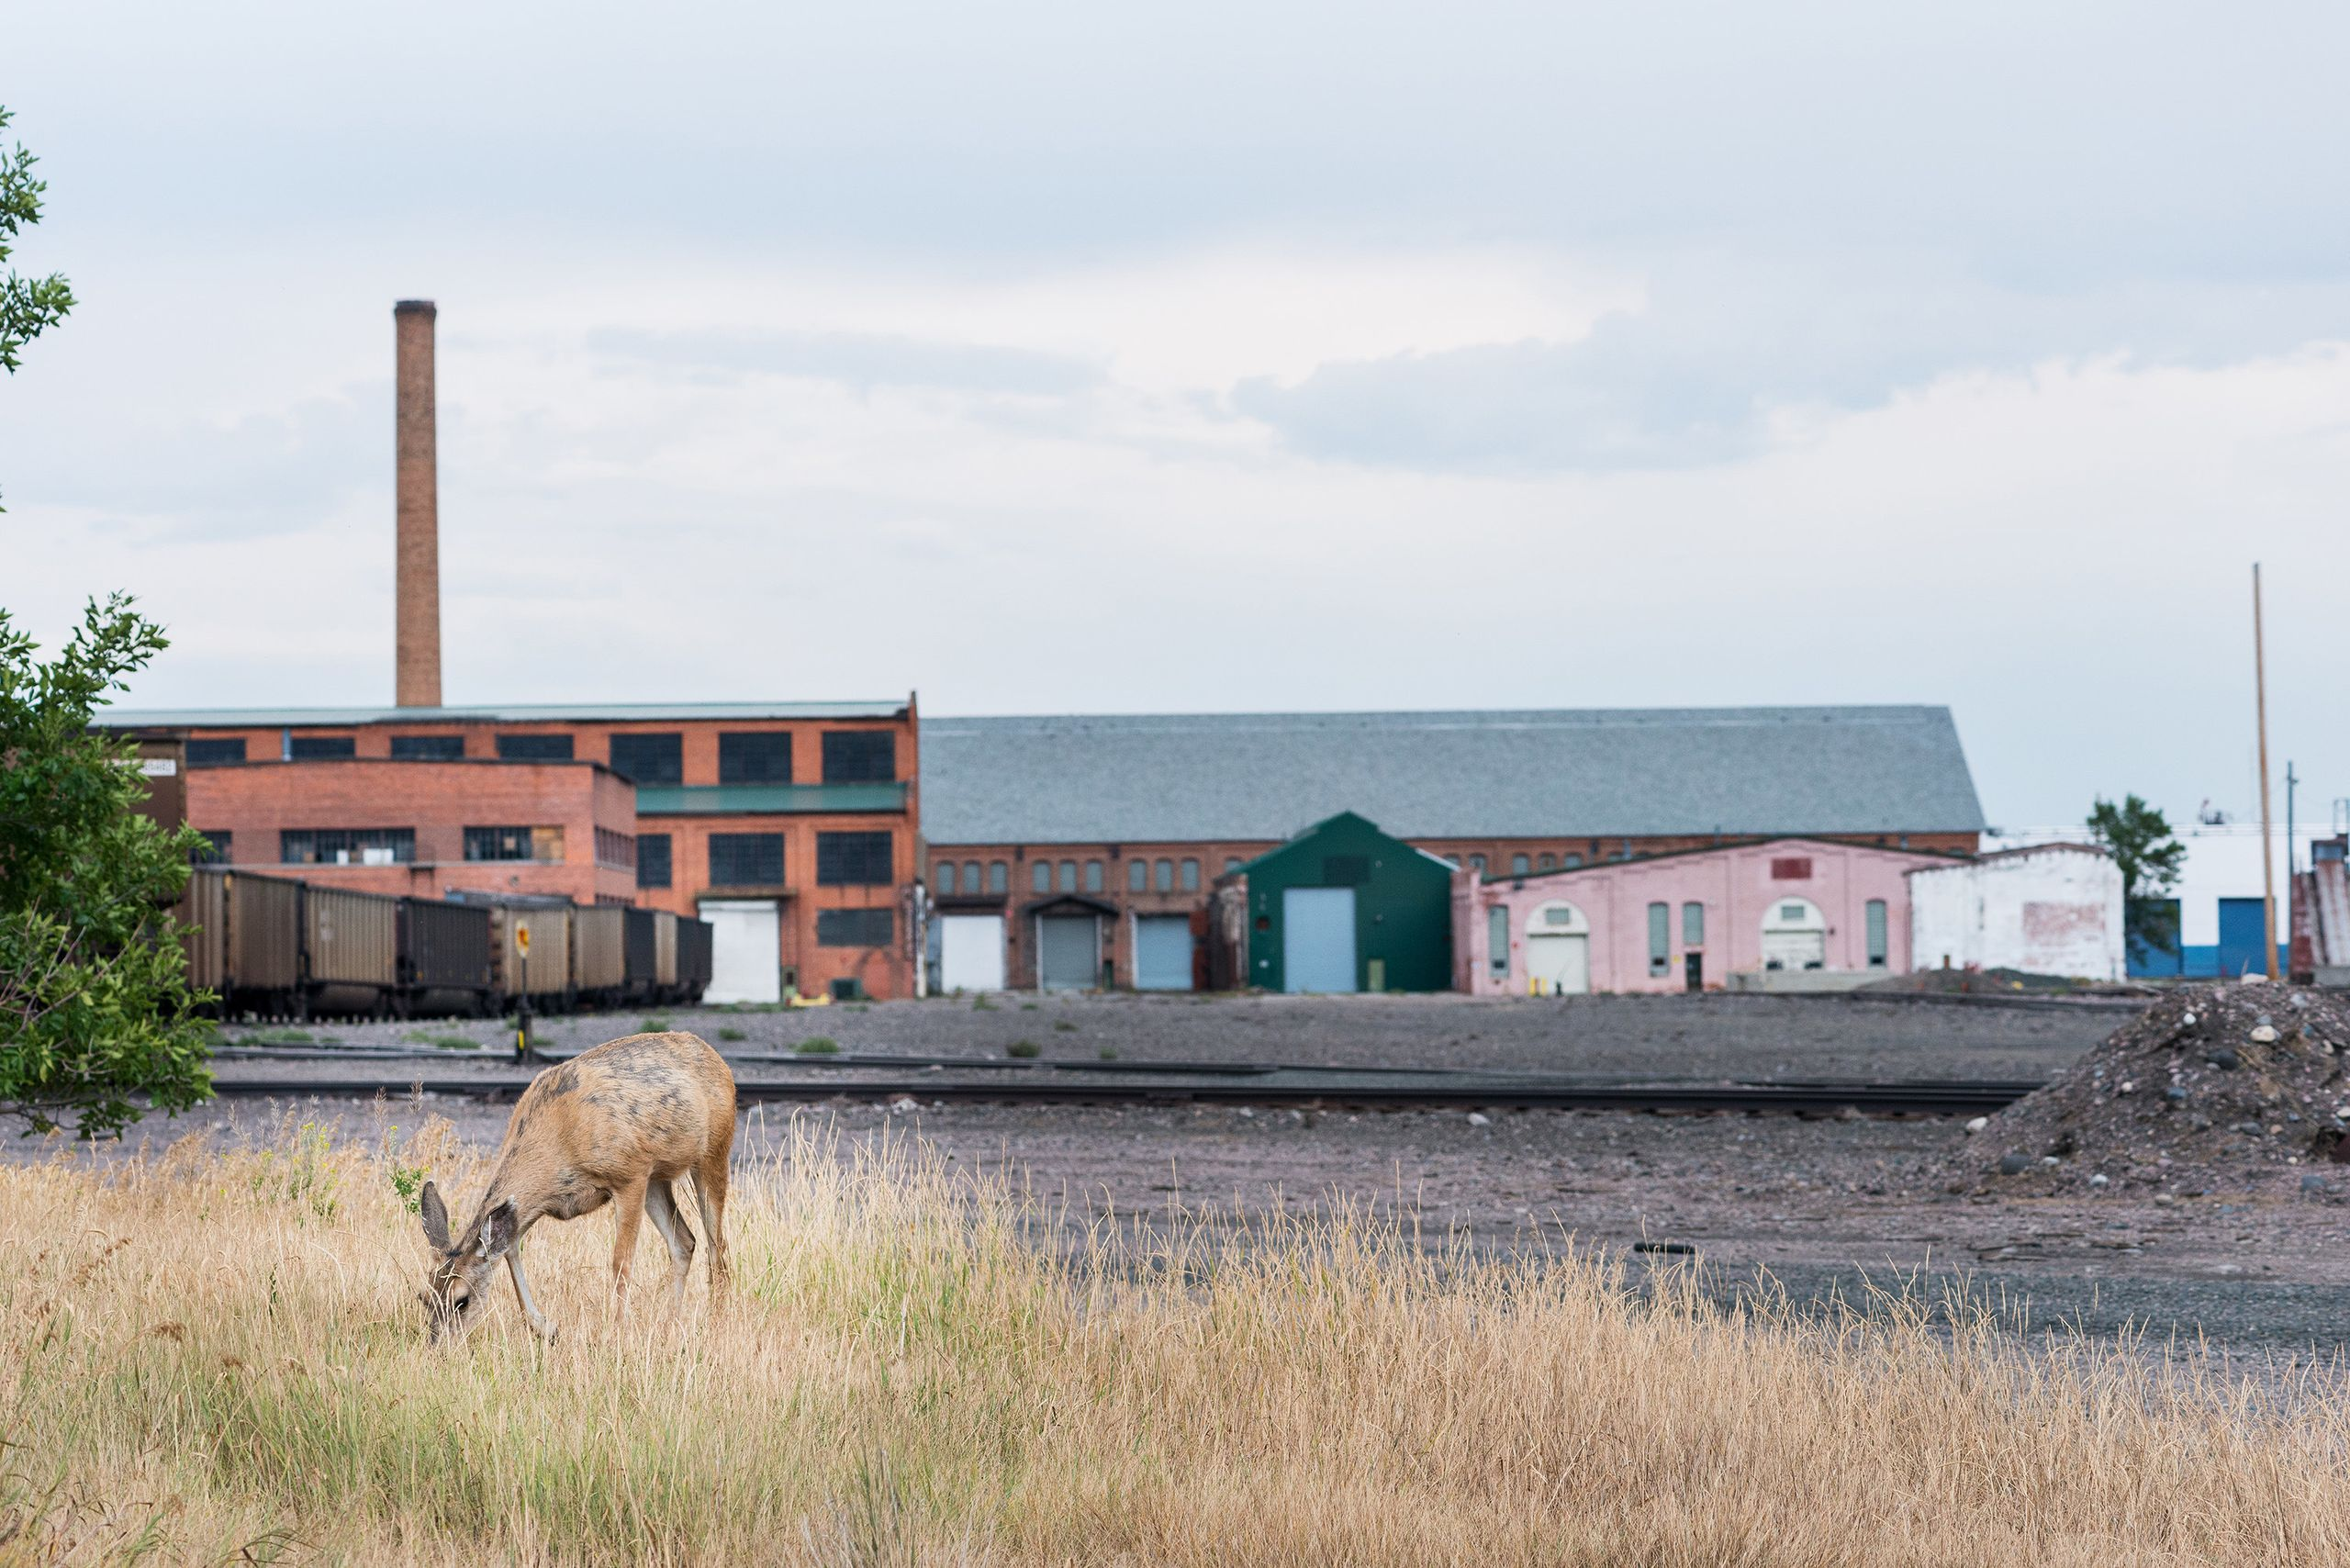 A deer grazes near the Livingston rail yard, one of 18 state-recognized superfund sites tied to Burlington Nor